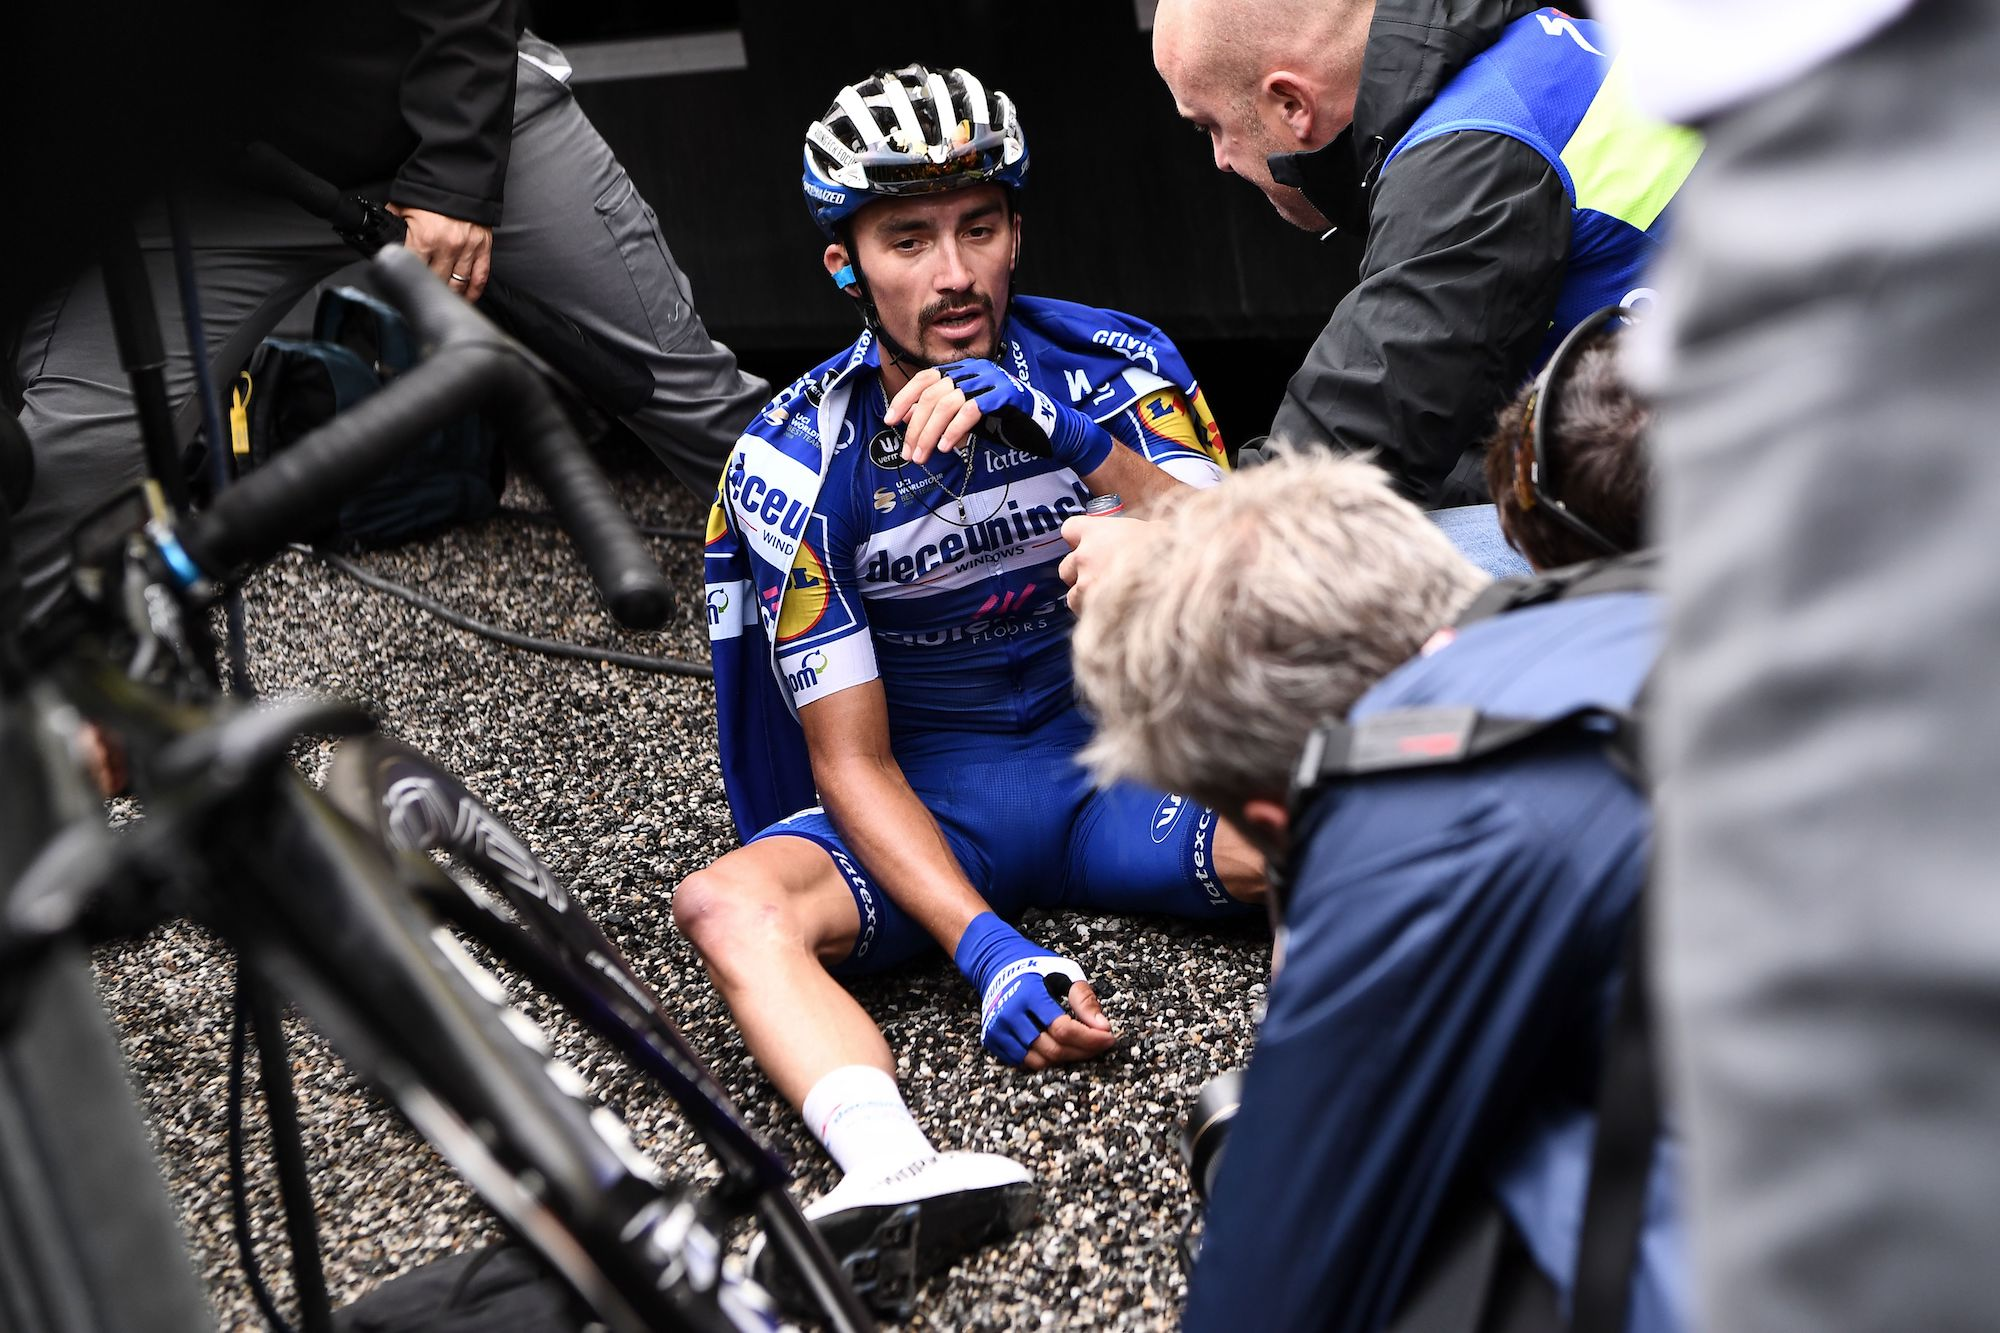 'Exhausted, happy, proud': Julian Alaphilippe says he gave everything in remarkable Tour de France